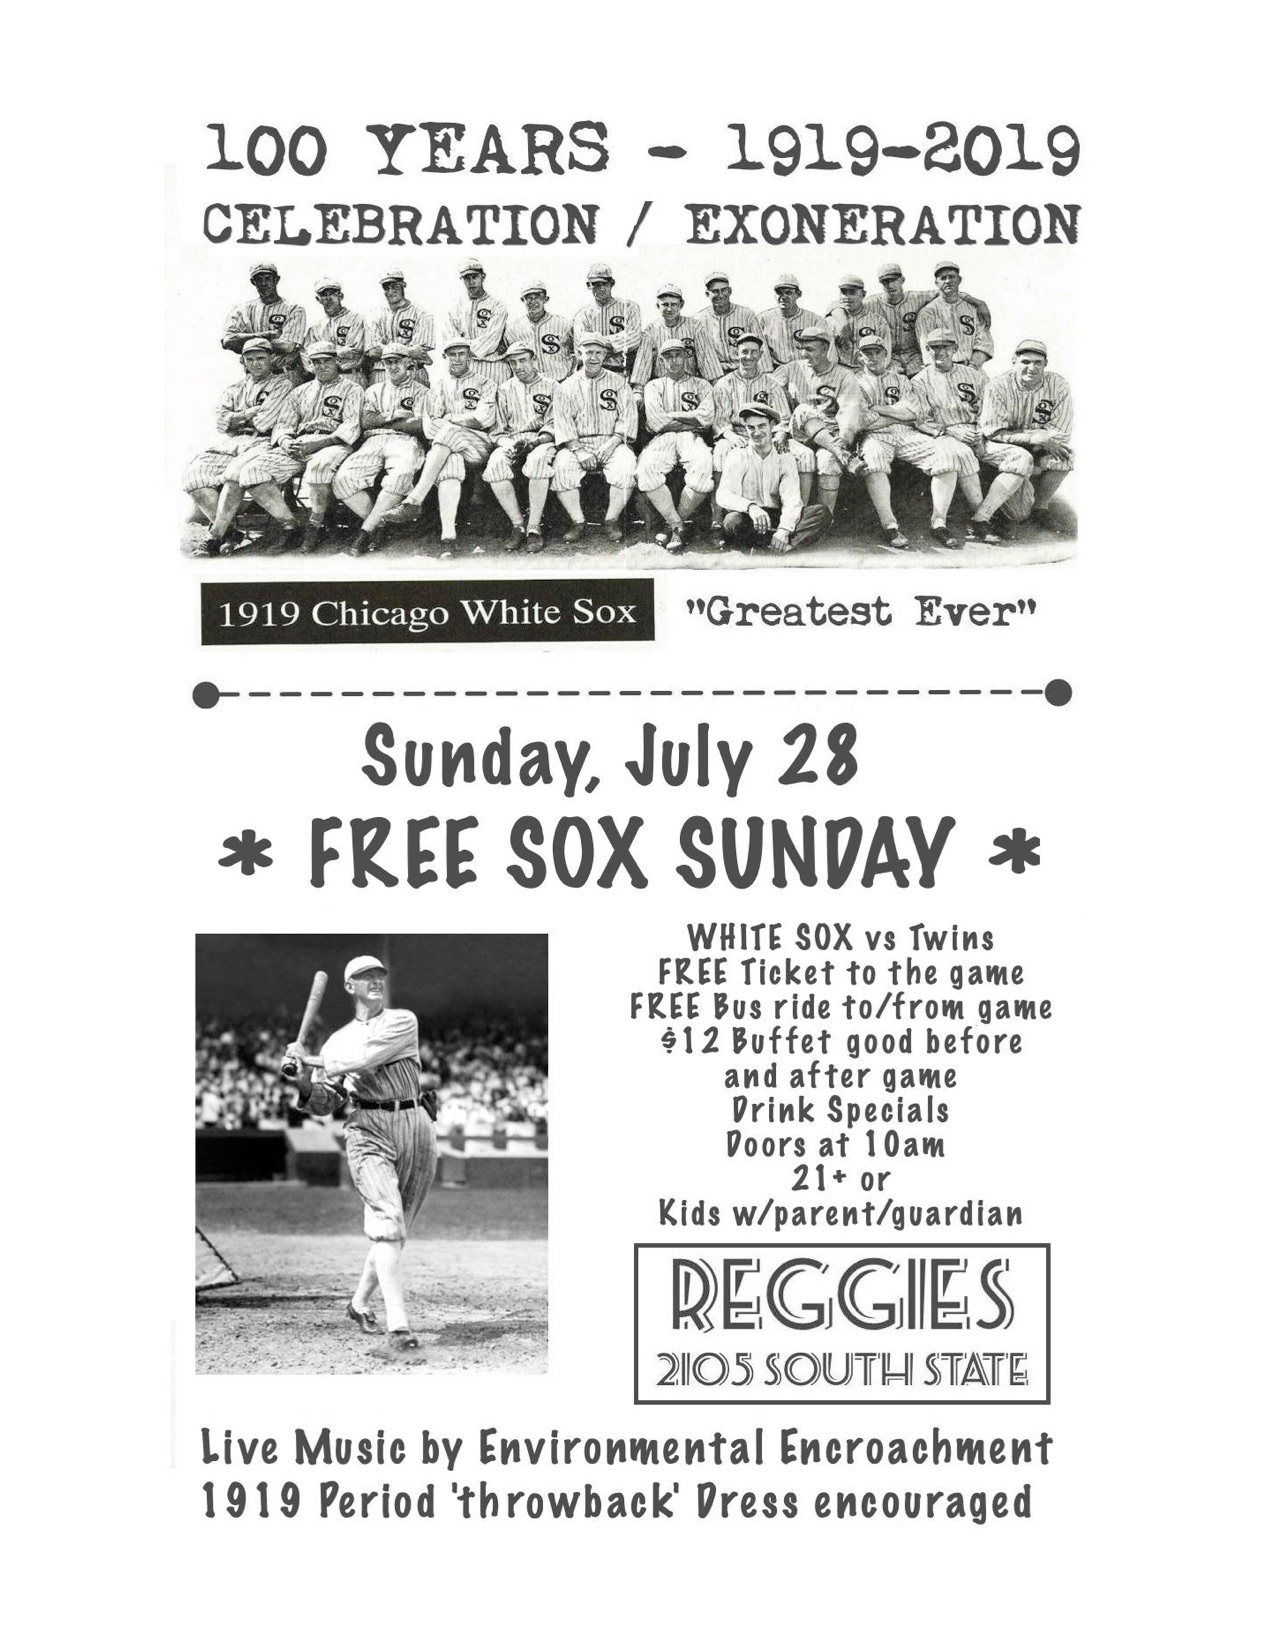 1919 Chicago Black Sox Celebration - Reggies Chicago